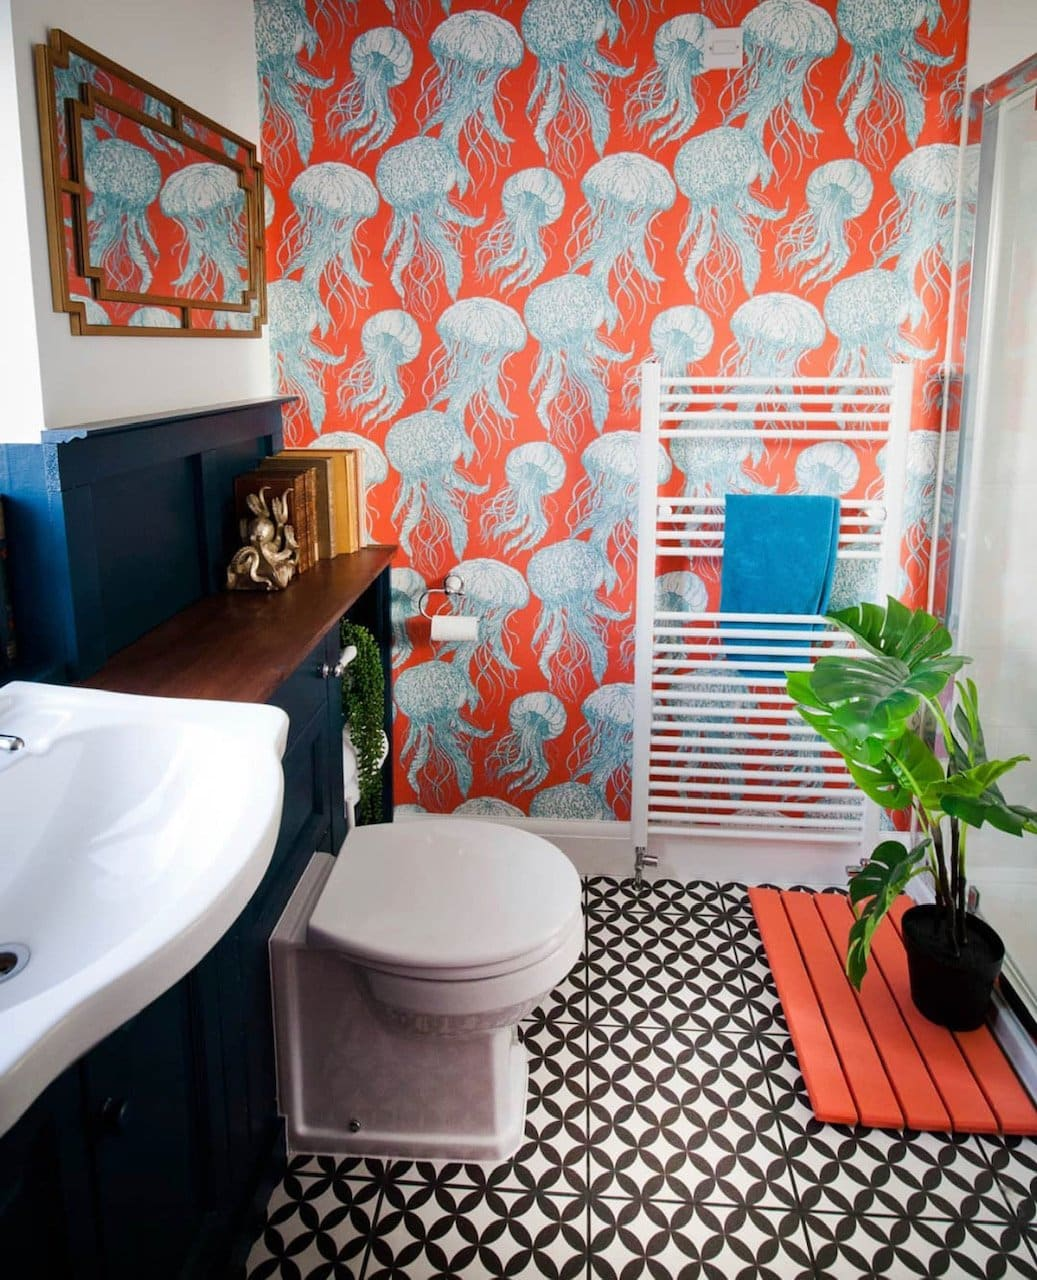 jellyfish wallpaper, bathroom, monochrome tiles